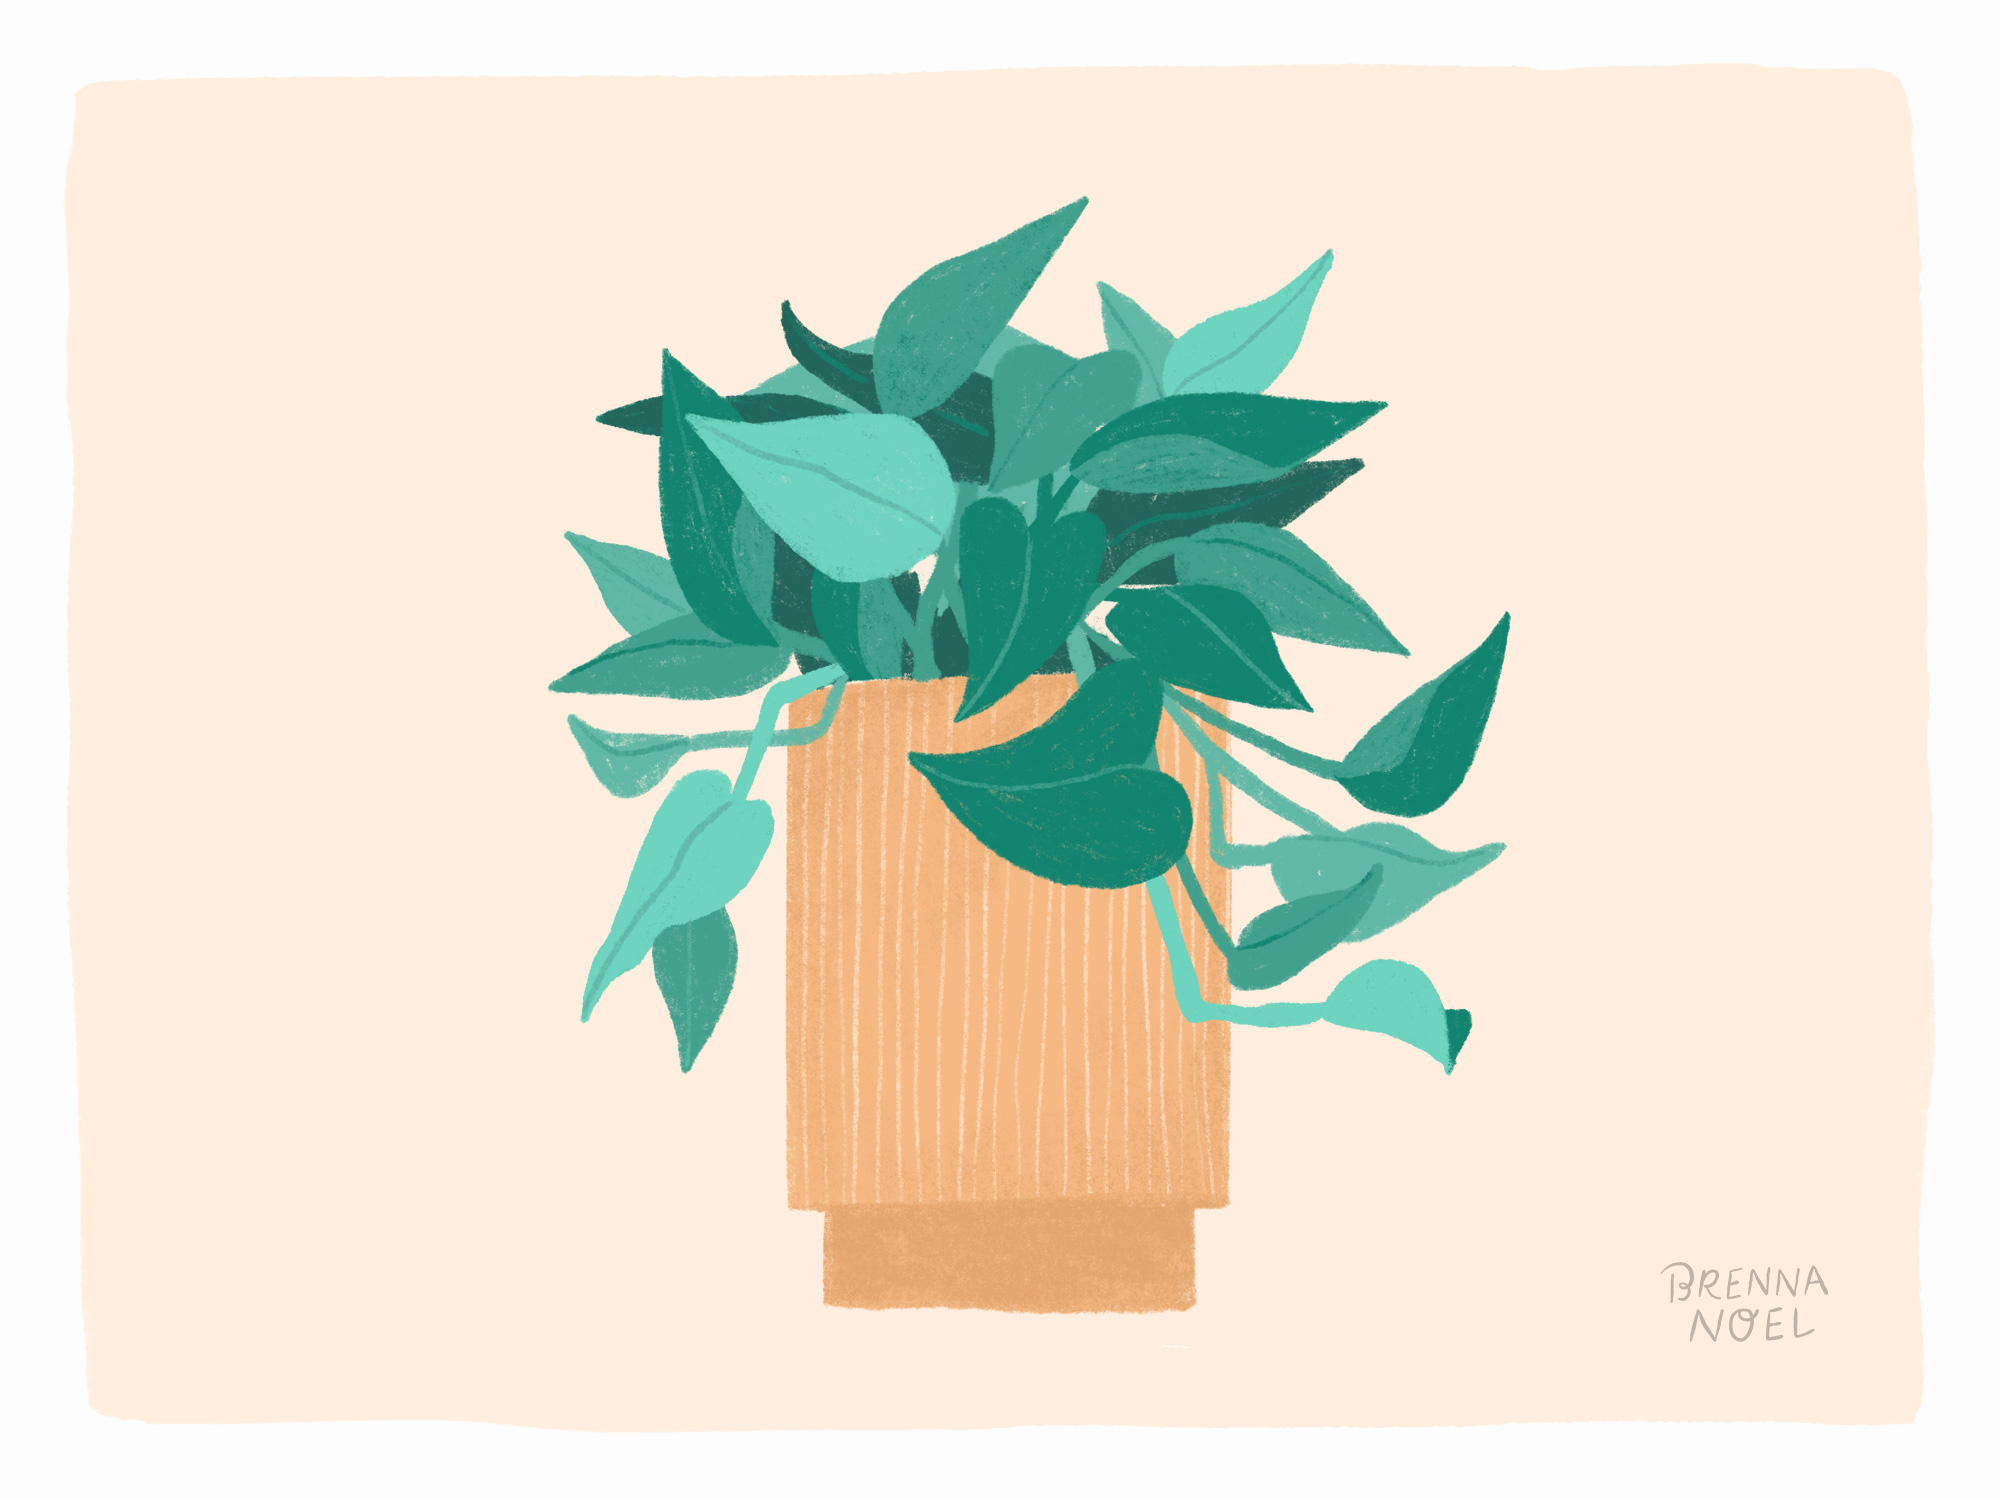 BN-Dribbble-Houseplant9.jpg